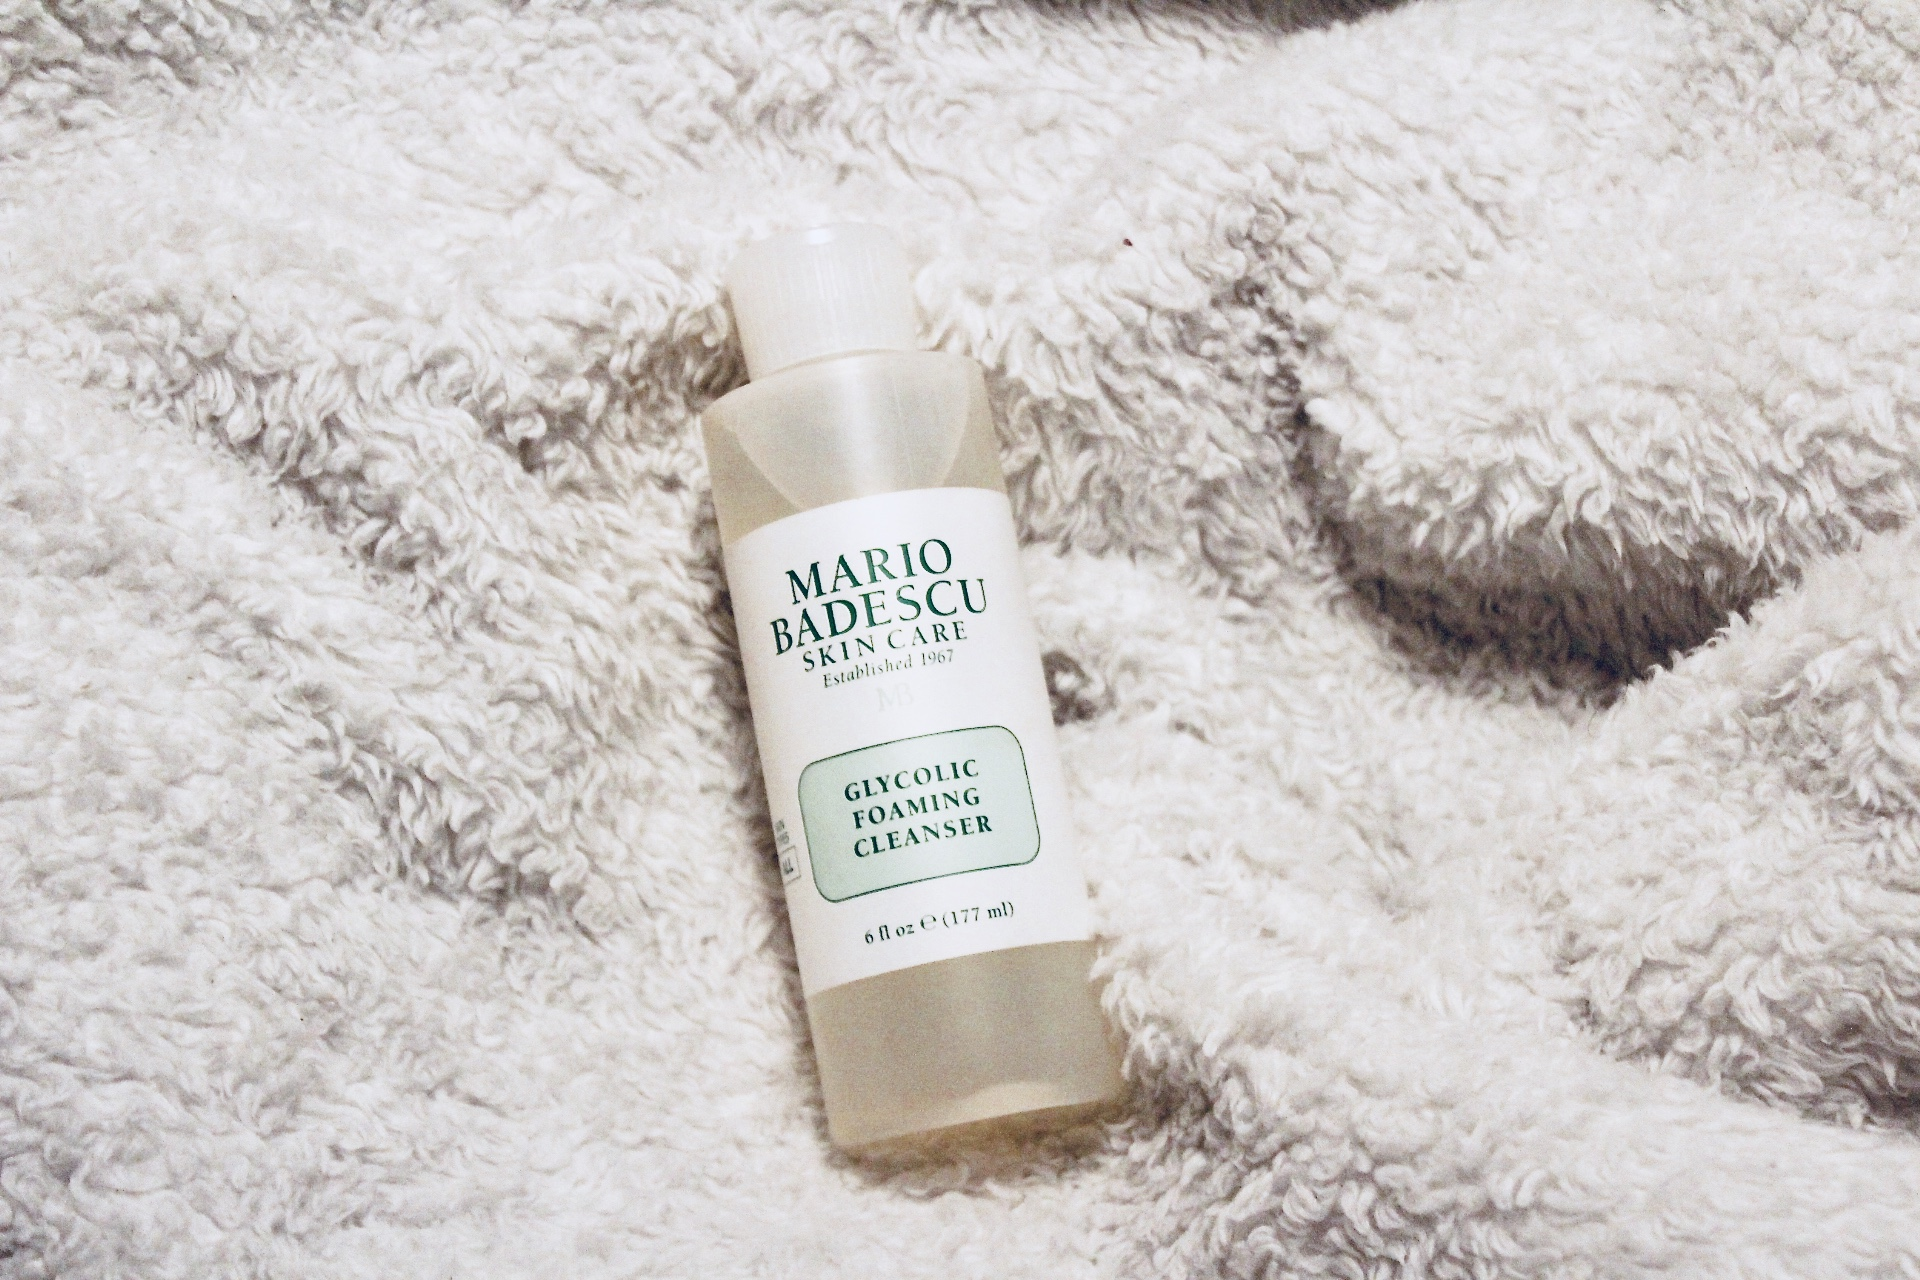 Beauty Basics: Skincare Favorites | Instead I've opted for the holistic route (mostly) and haven't looked back since. I've decided to share my secrets of the products I've been using to improve my pores.